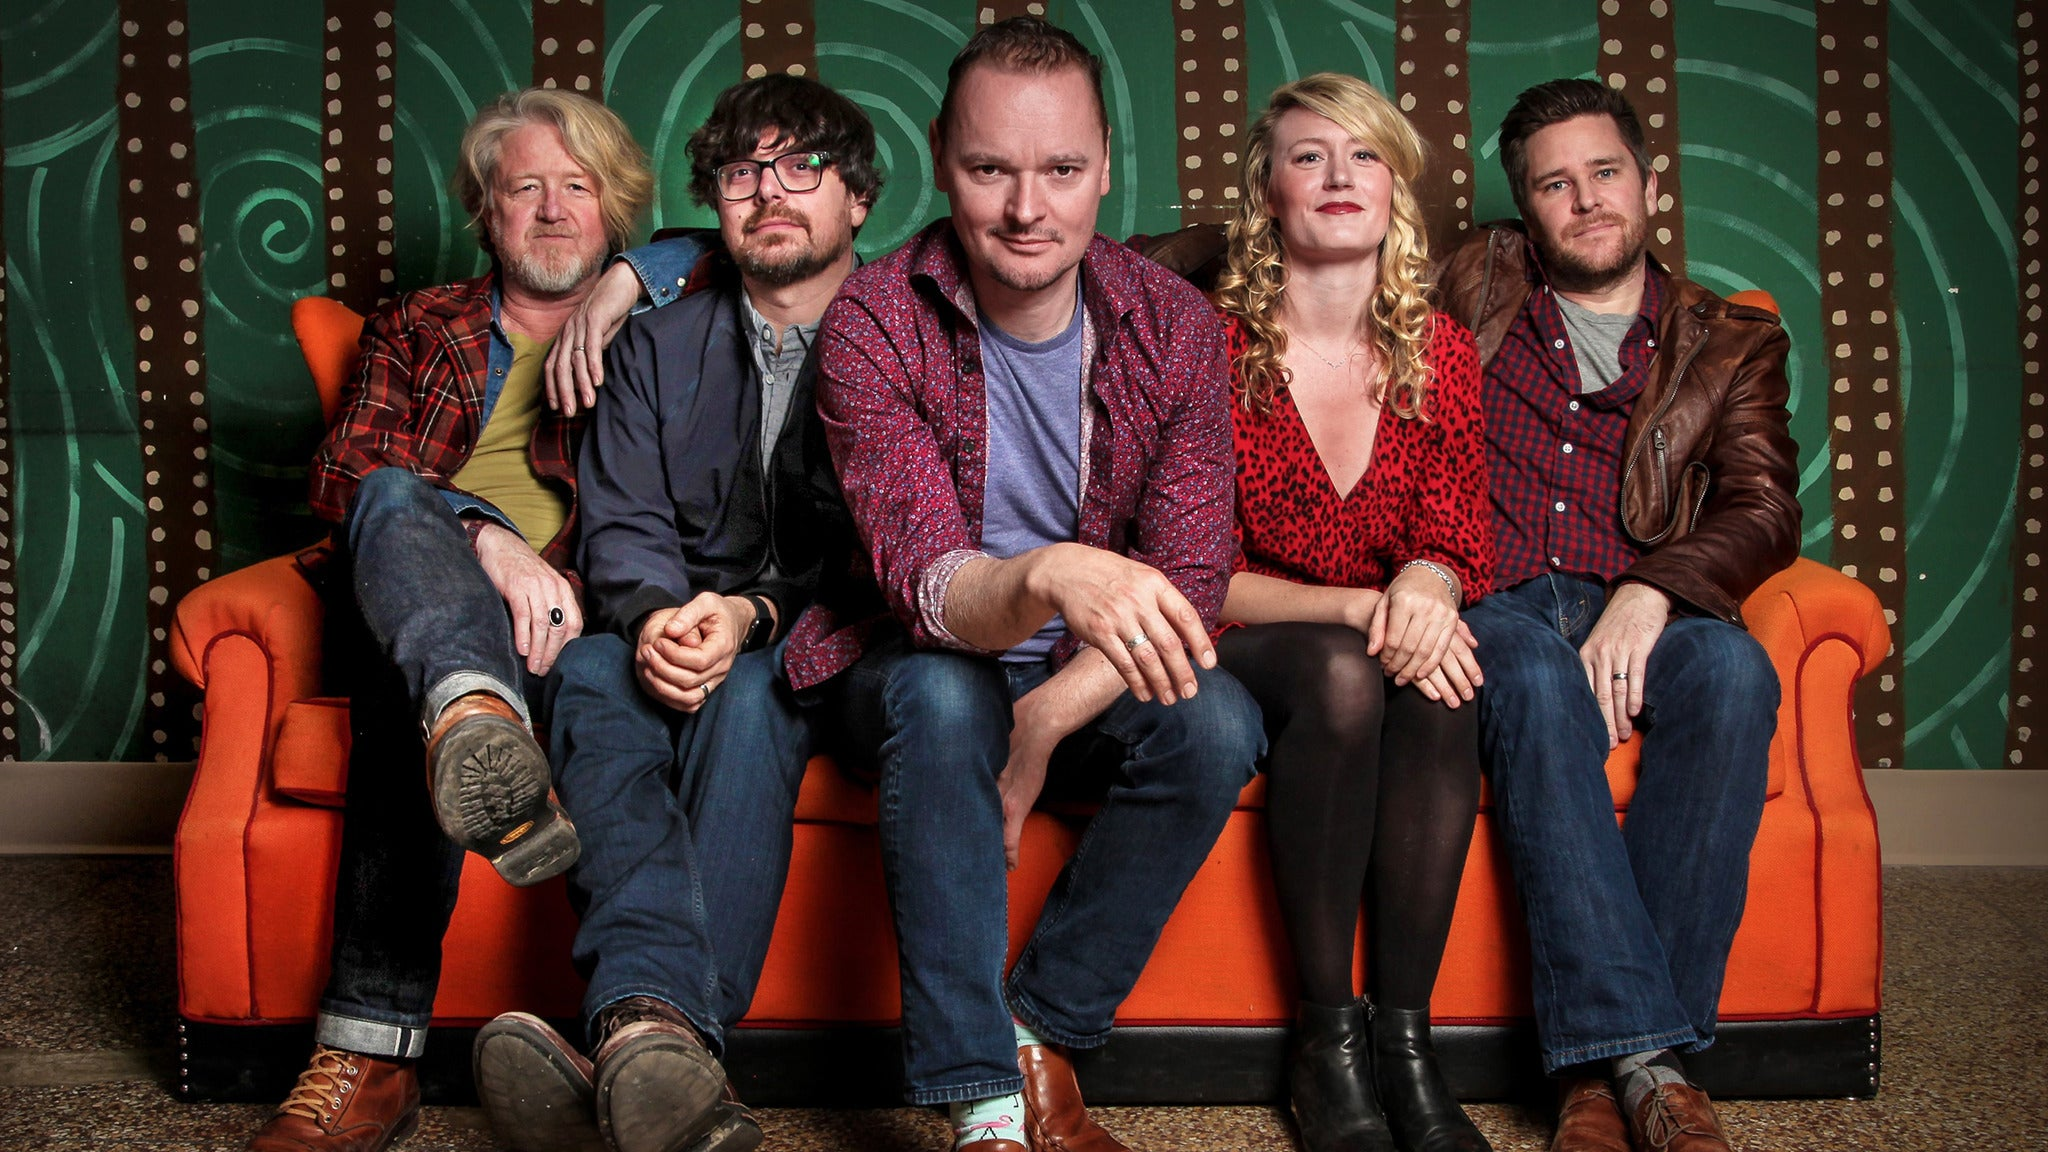 Gaelic Storm at South Orange Performing Arts Center